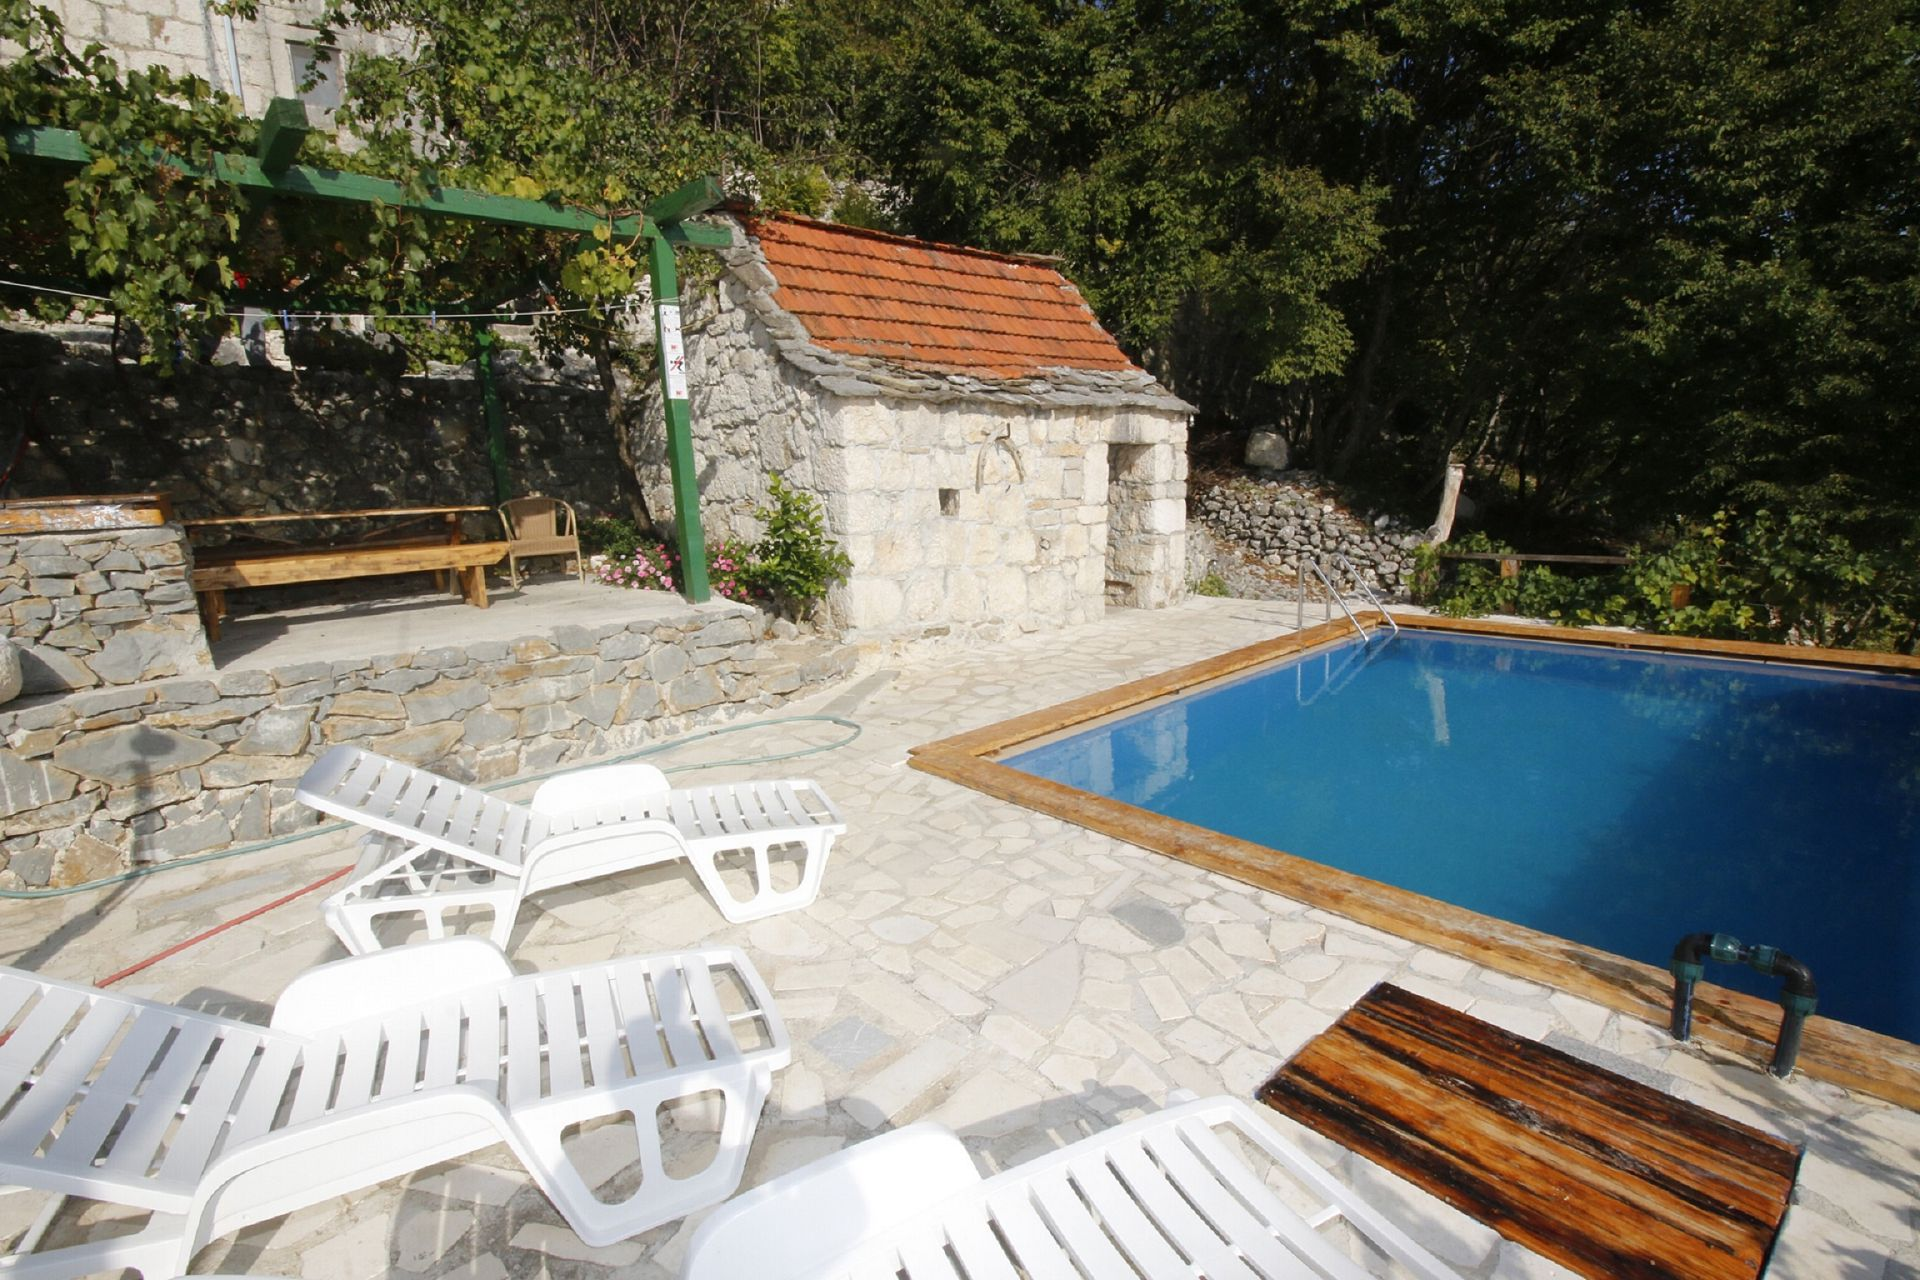 Mario  - Gata - Holiday houses, villas Croatia